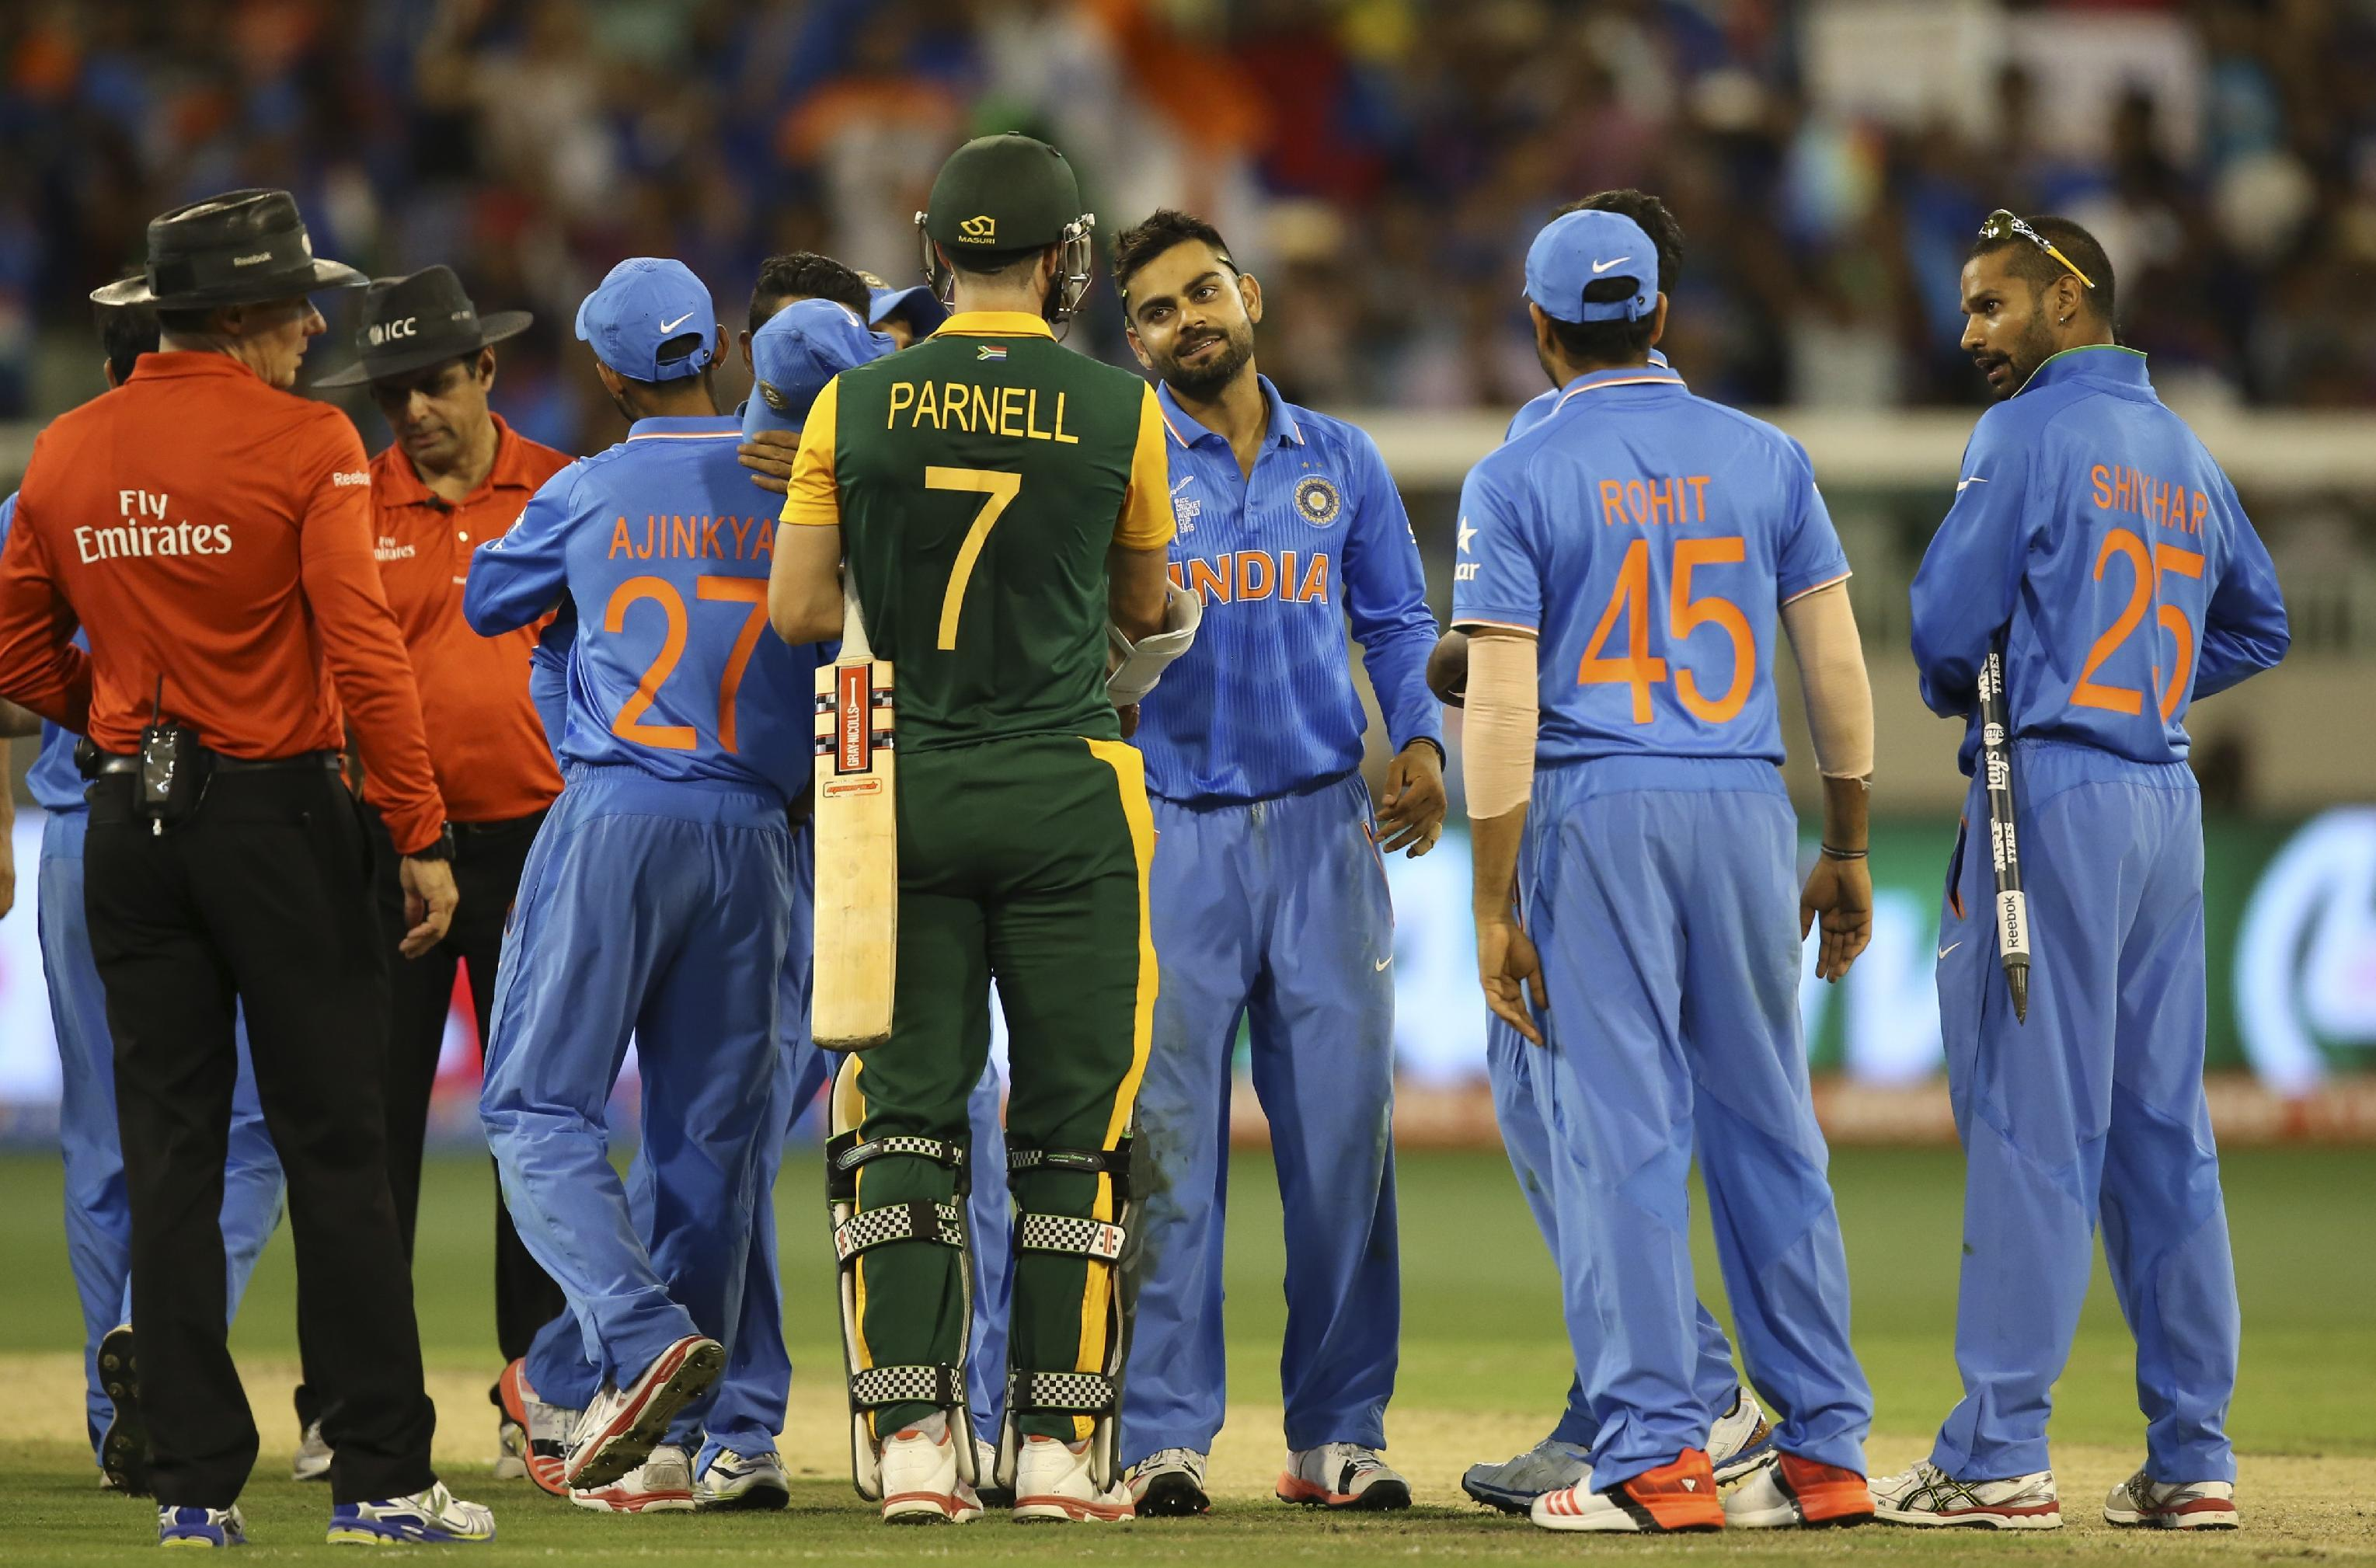 Champion India aiming to continue World Cup momentum